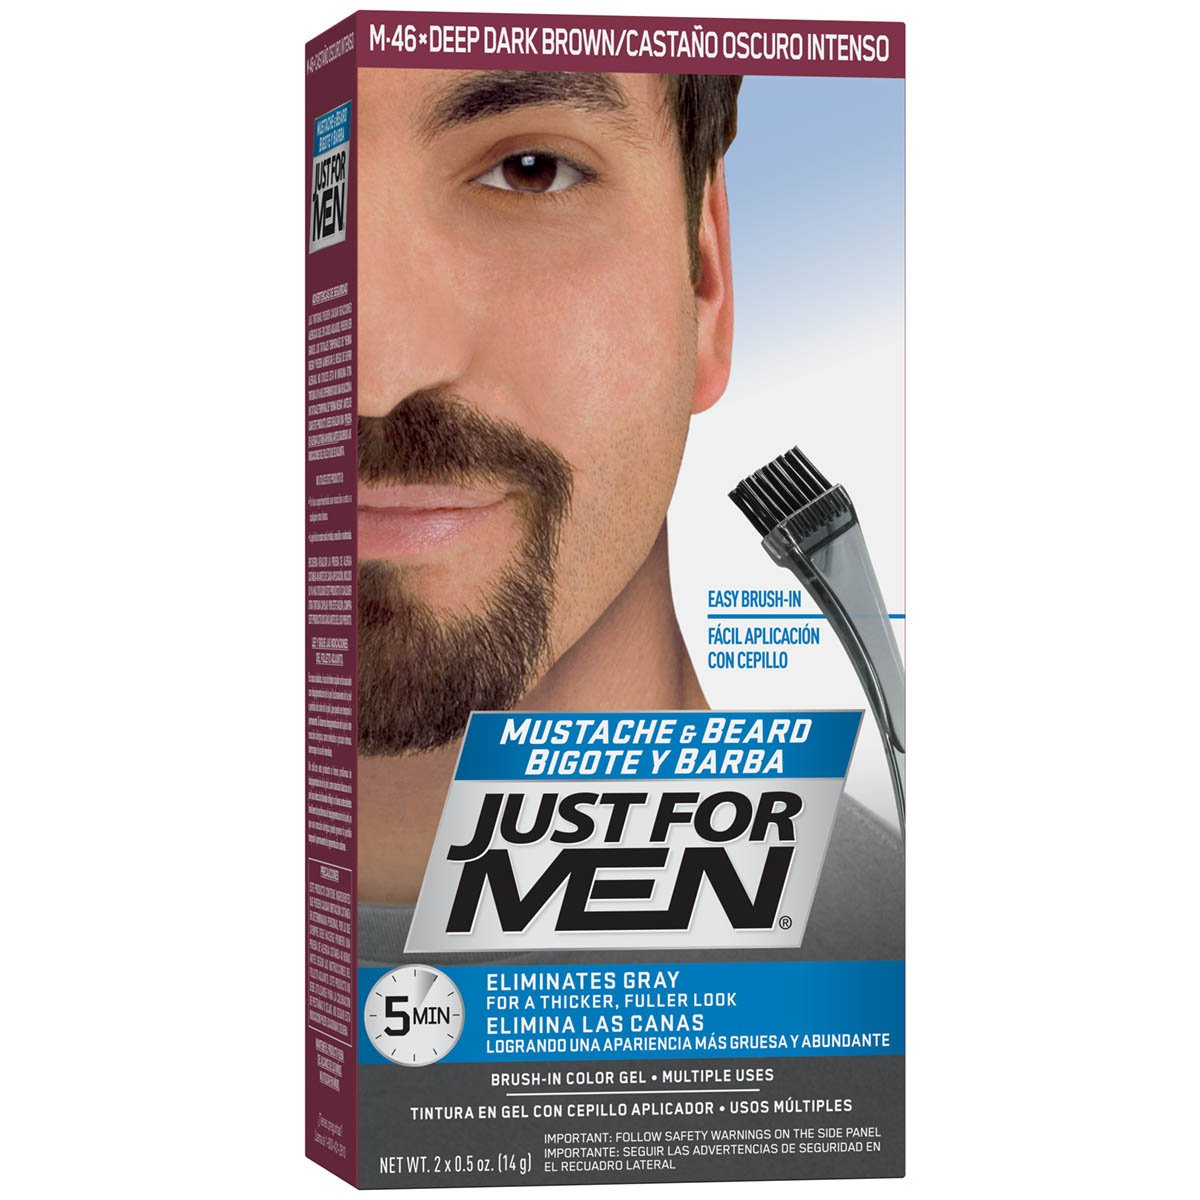 Just For Men Mustache & Beard Color, Beard Coloring for Men, Deep Dark Brown